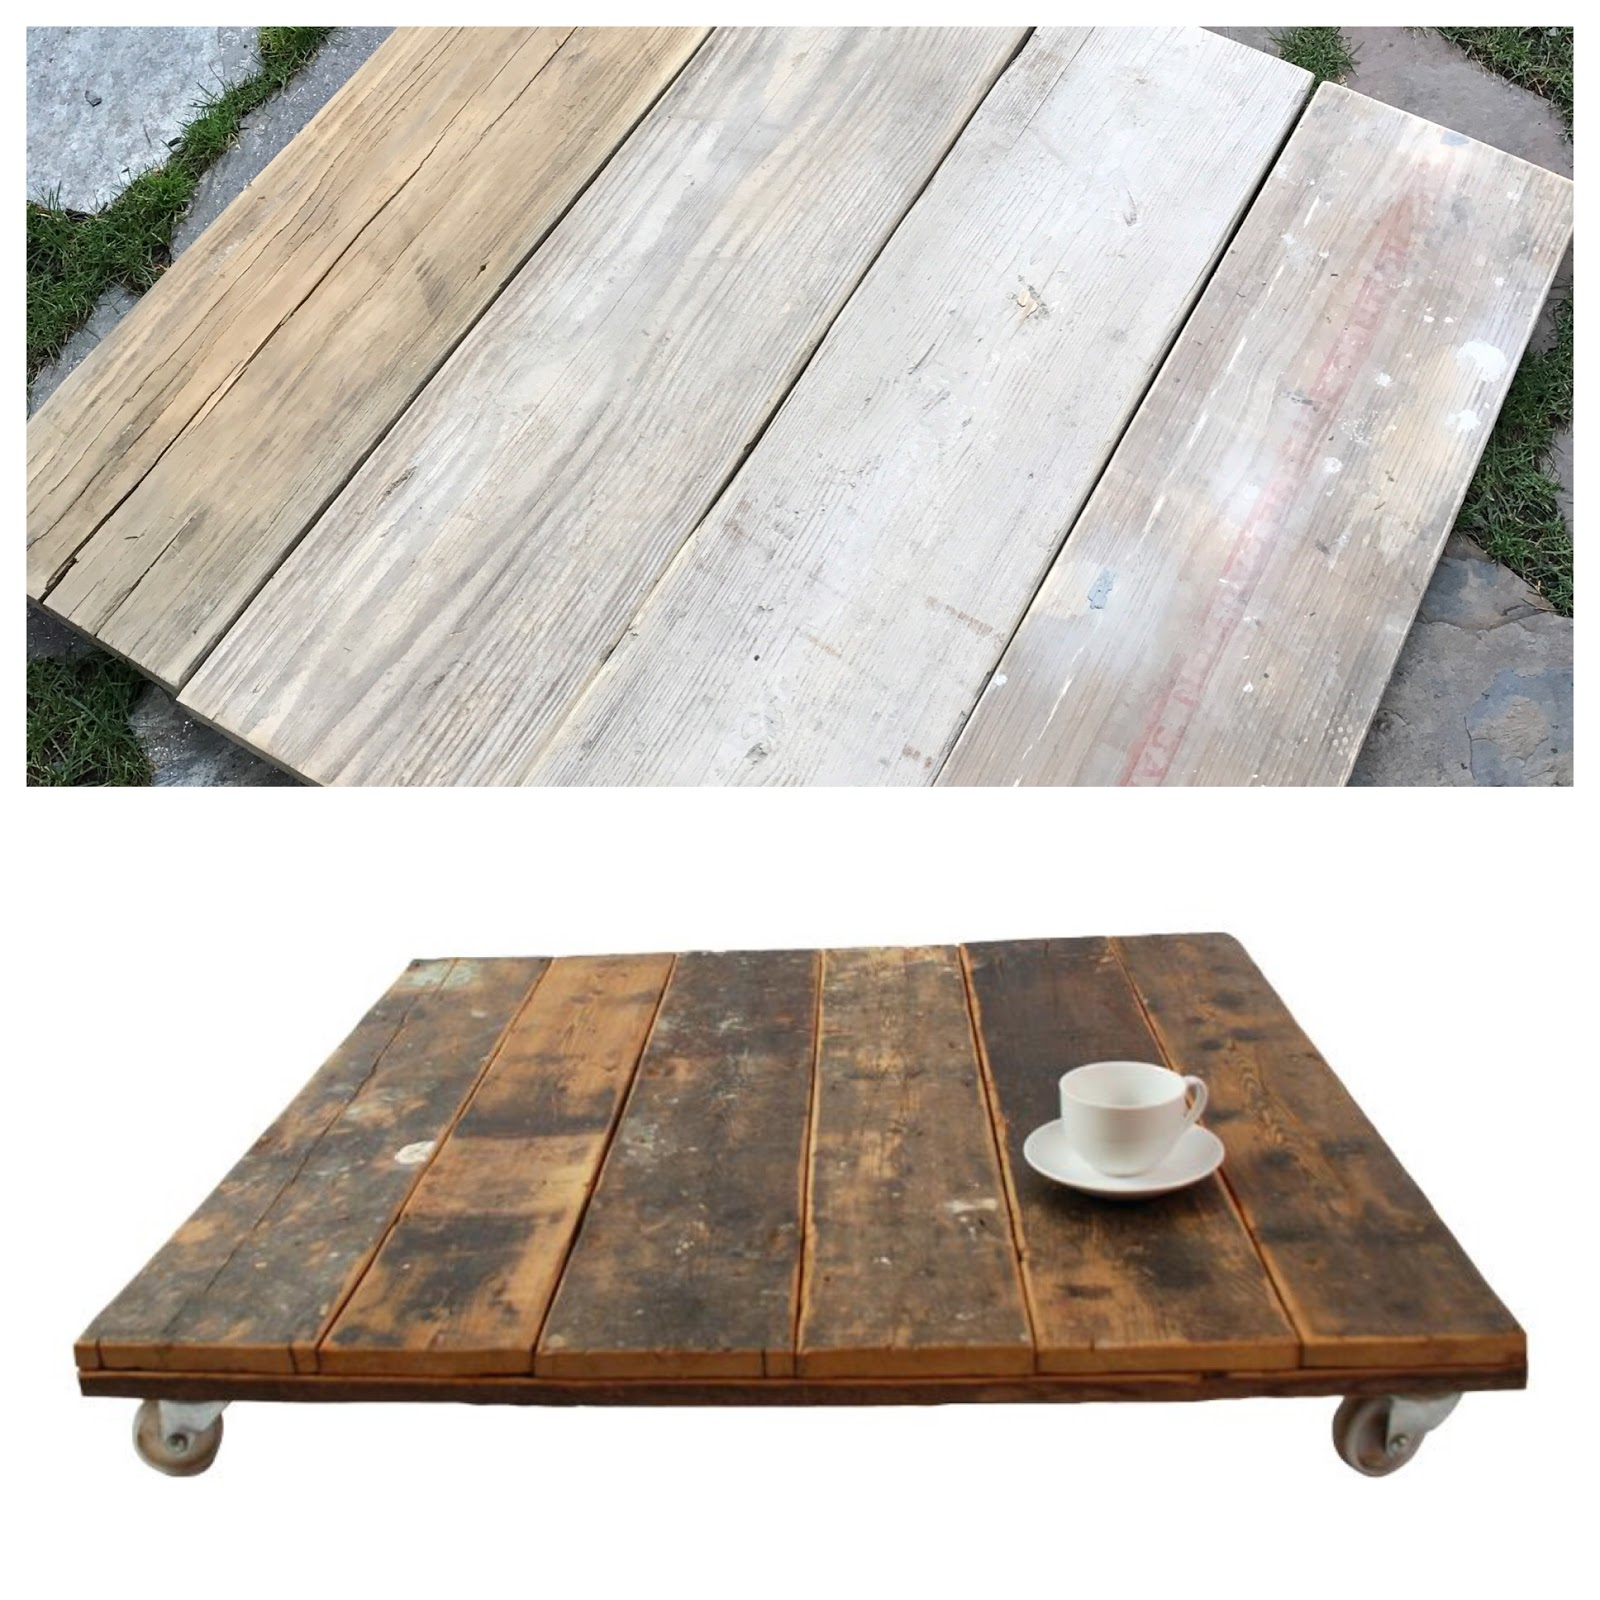 The Next Step Was To Stain The Wood. I Used A Combination Of Stains To Get  A Variety Of Colors.